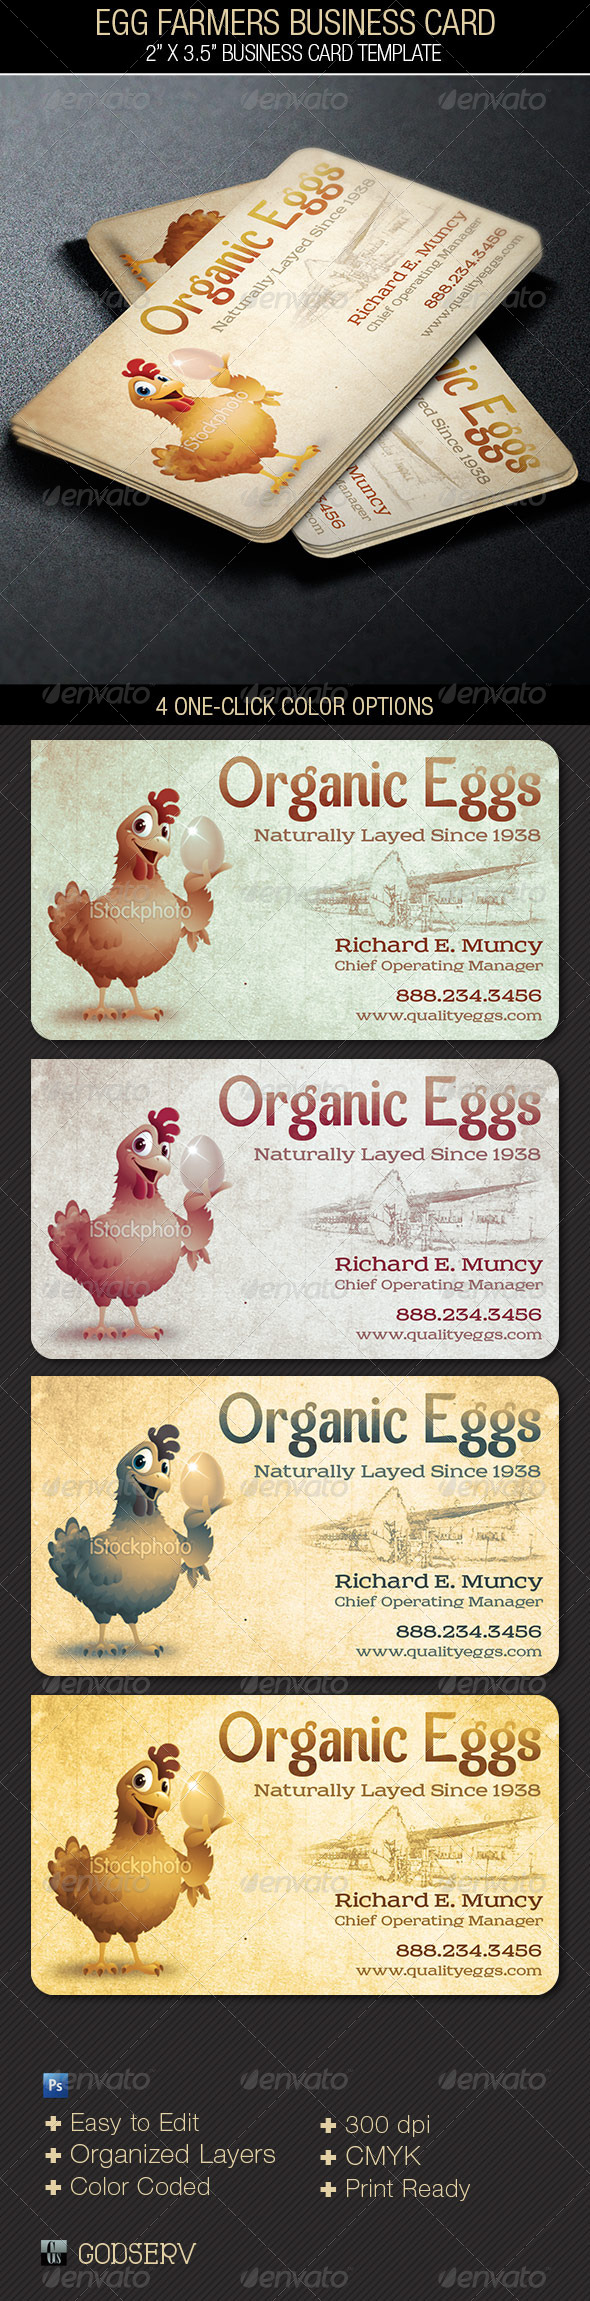 GraphicRiver Egg Farmers Business Card 5232075